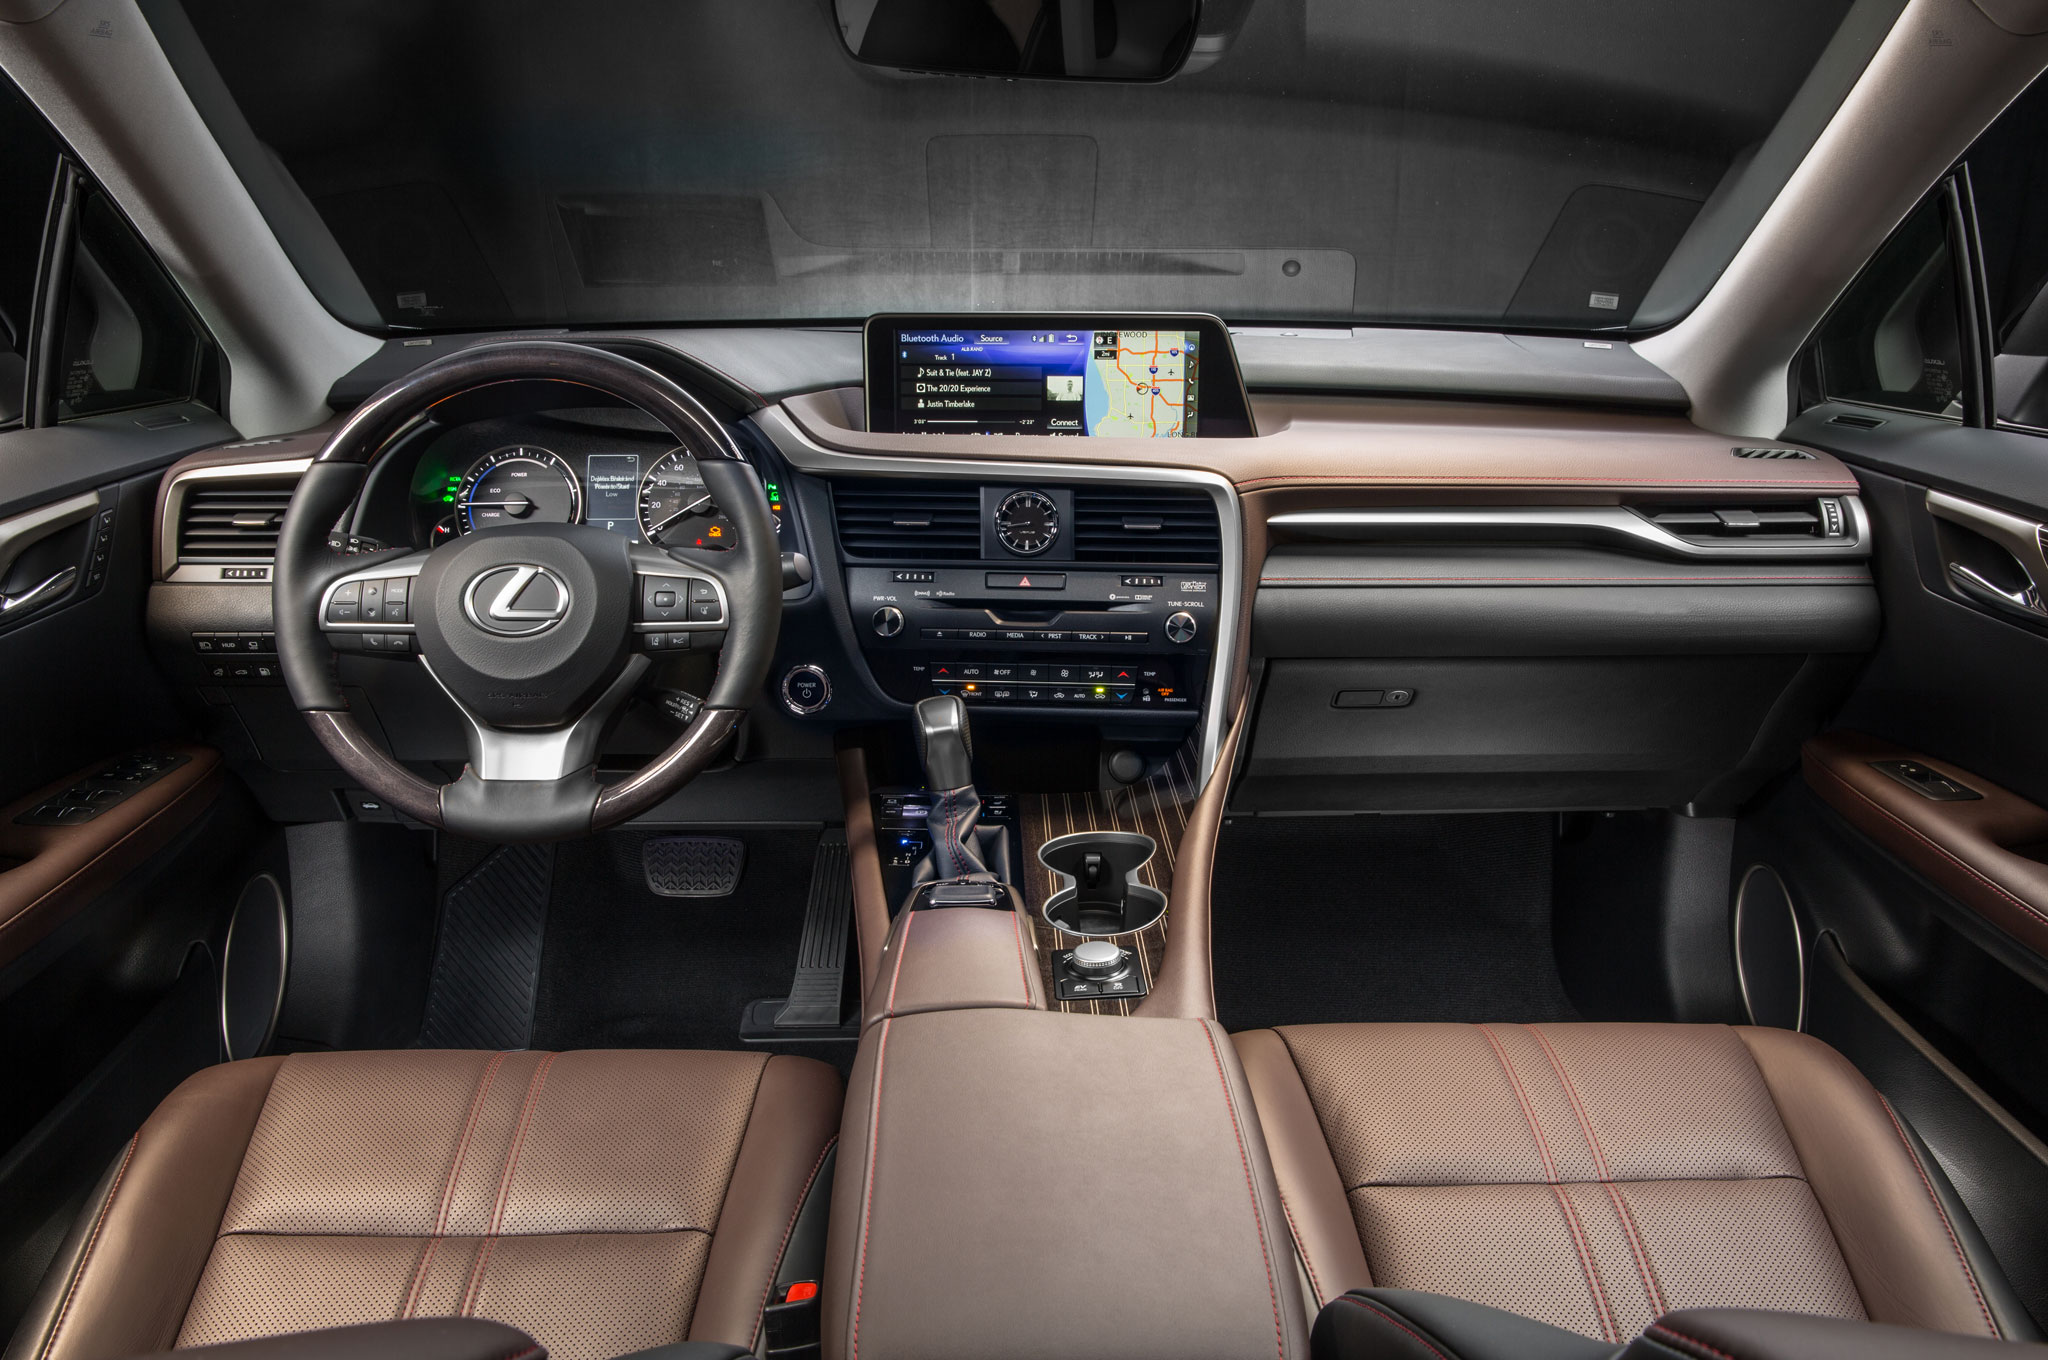 https://enthusiastnetwork.s3.amazonaws.com/uploads/sites/5/2015/09/2016-Lexus-RX-450h-interior.jpg